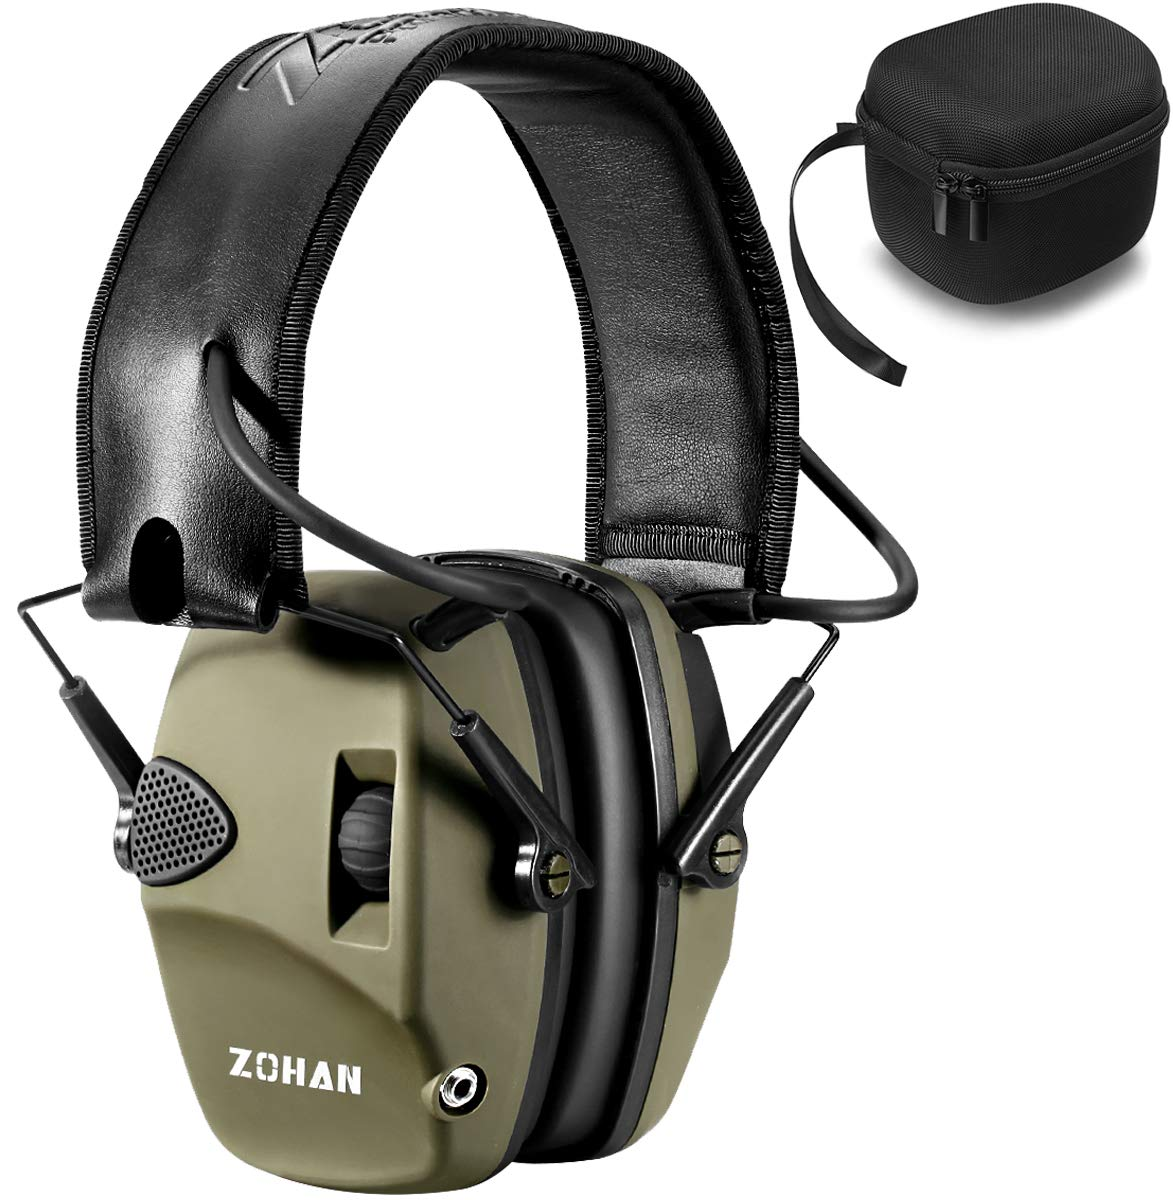 Electronic Shooting Ear Protection Muff | ZOHAN Sound Amplification Noise Reduction Hunting Earmuff - NRR 22dB -OD Green with Case by ZOHAN